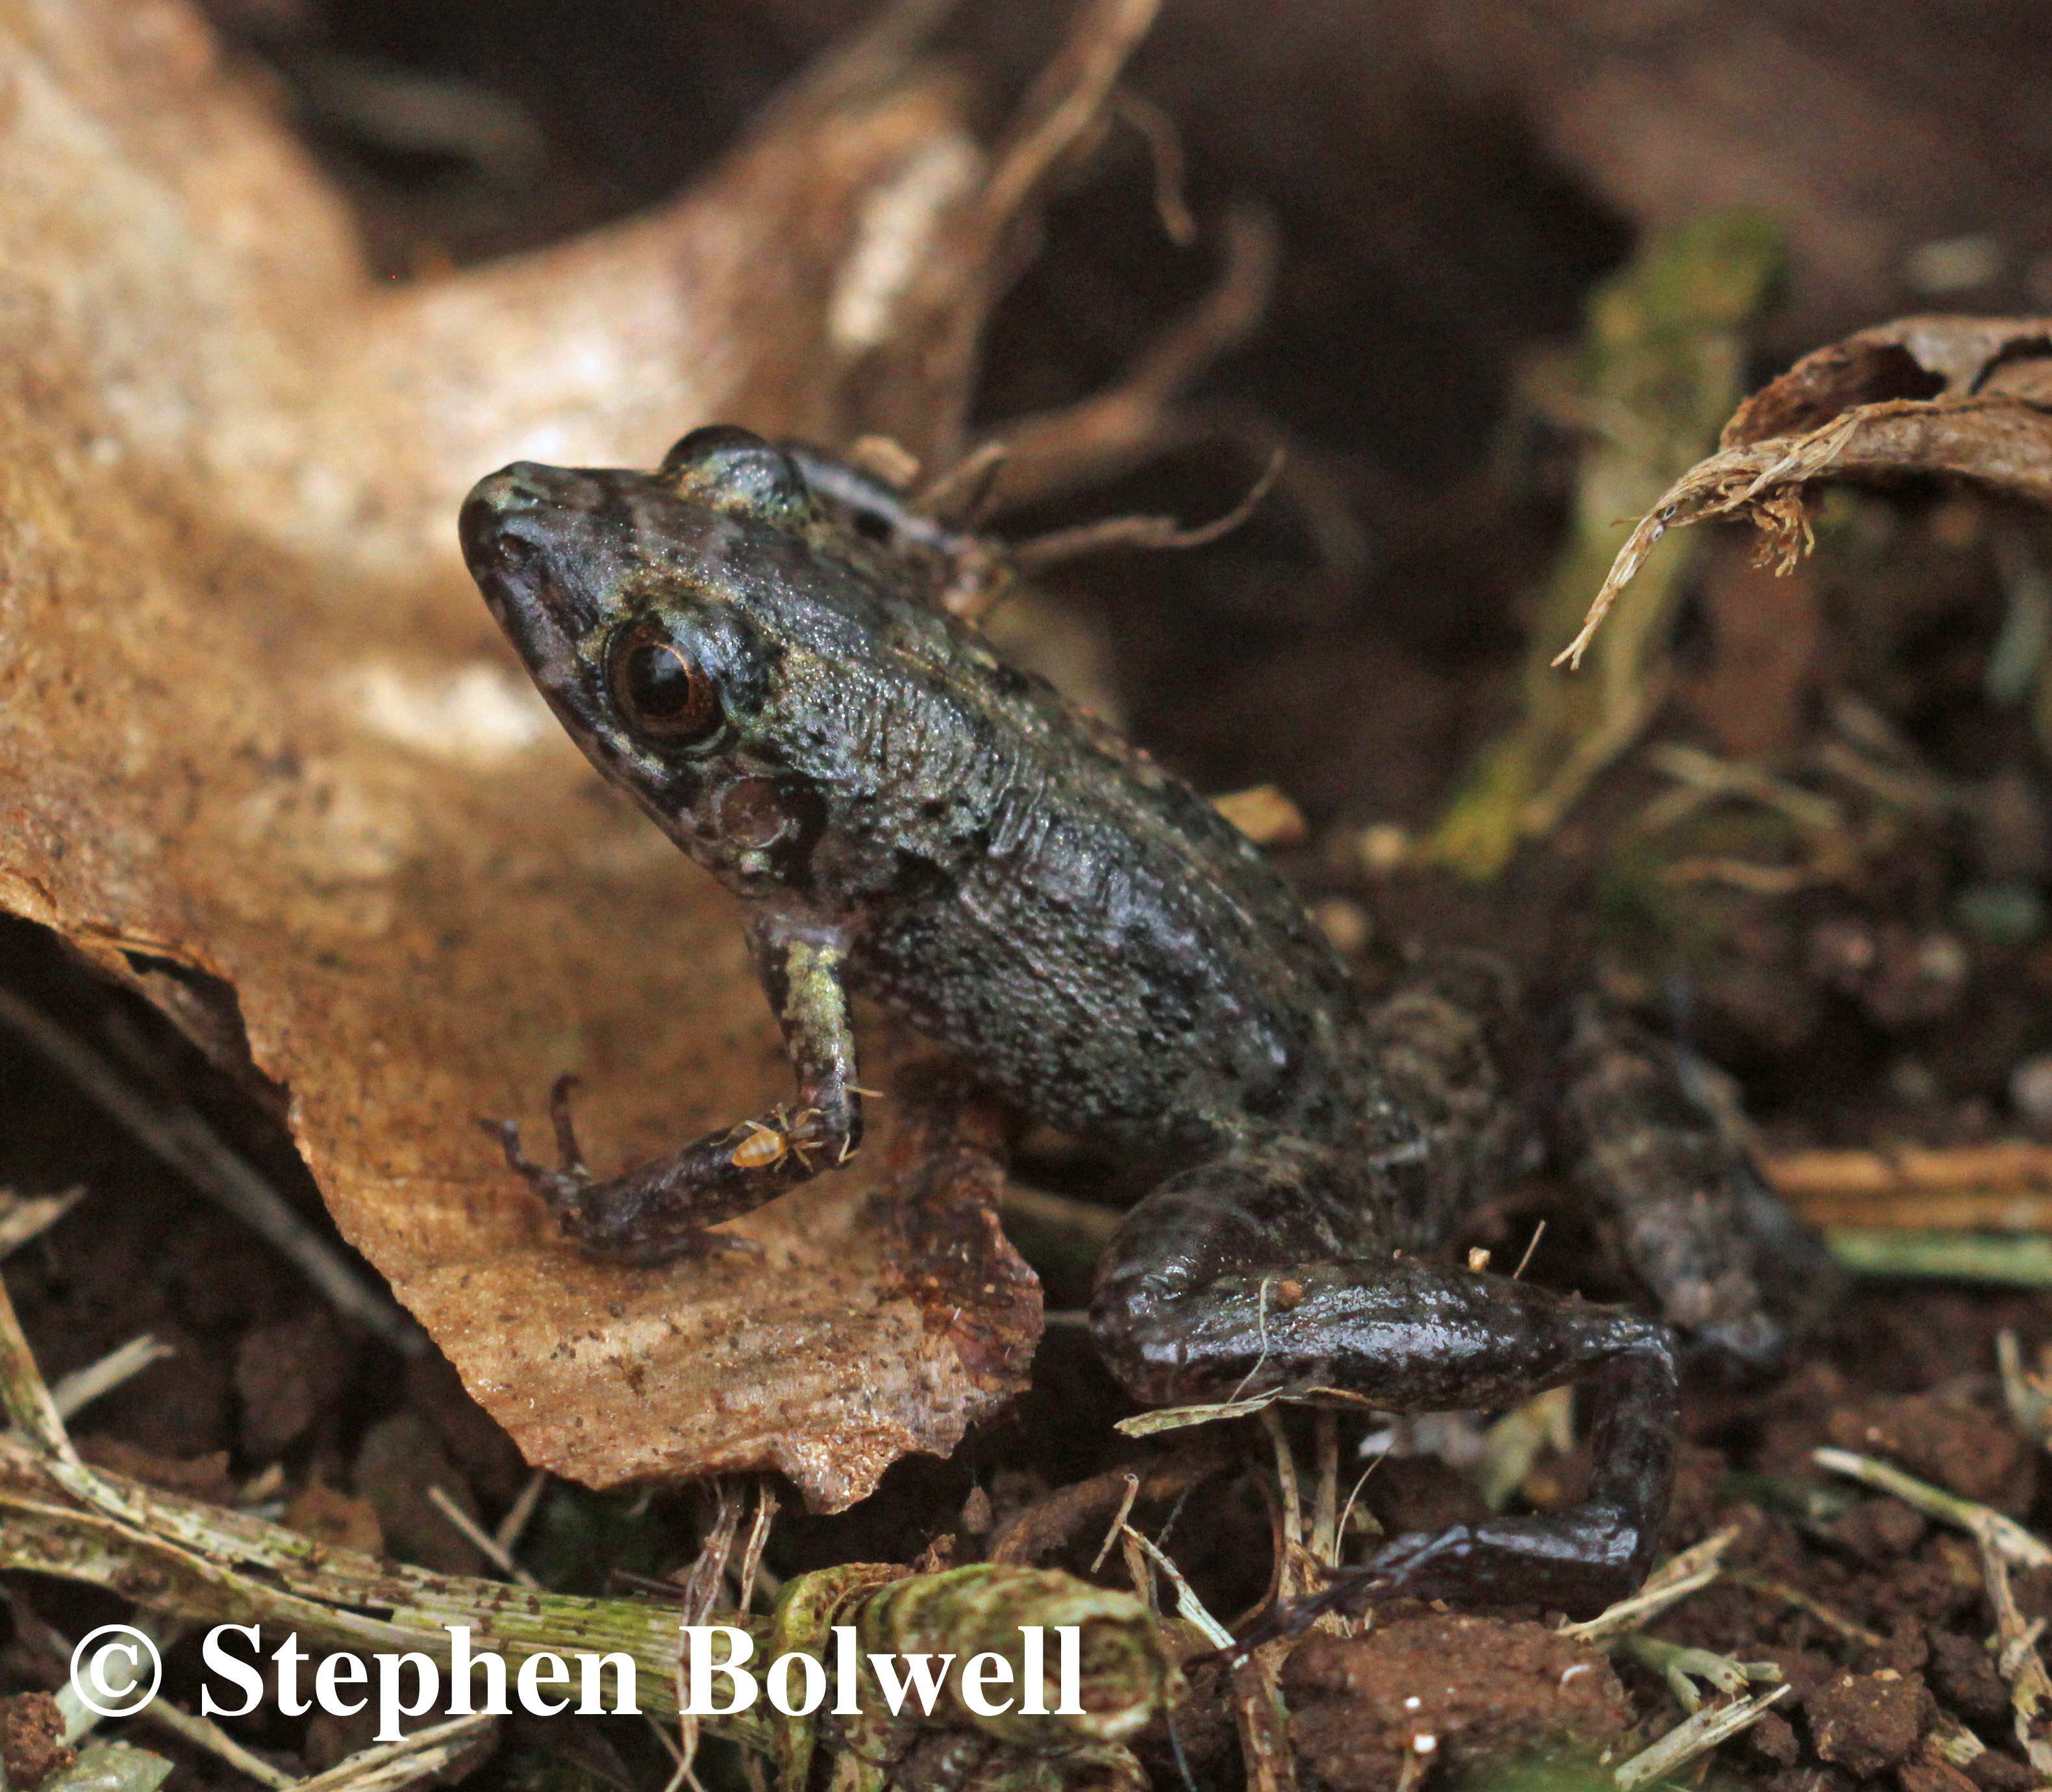 The greenhouse frog Eleutherodactylus planirostris is one of many introduced frogs eating their way through Hawaii's native invertebrate species.